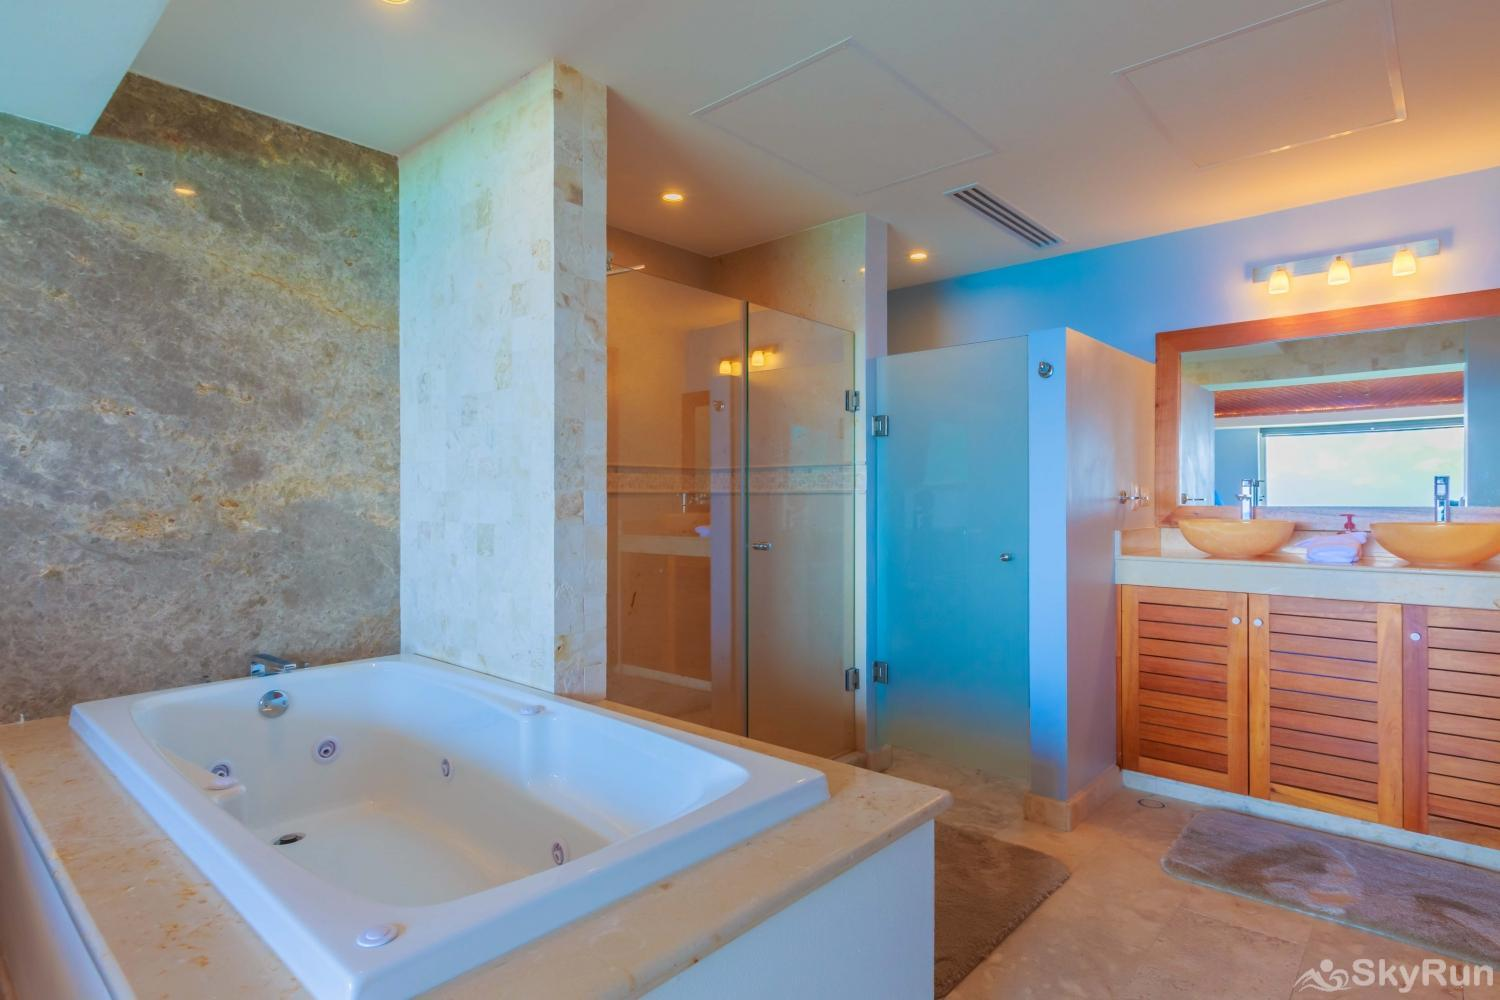 NEW Isla Mujeres Oceanview luxury 3 BR Villa The luxury Master Suite bathroom with big mirrors and a jacuzzi tub